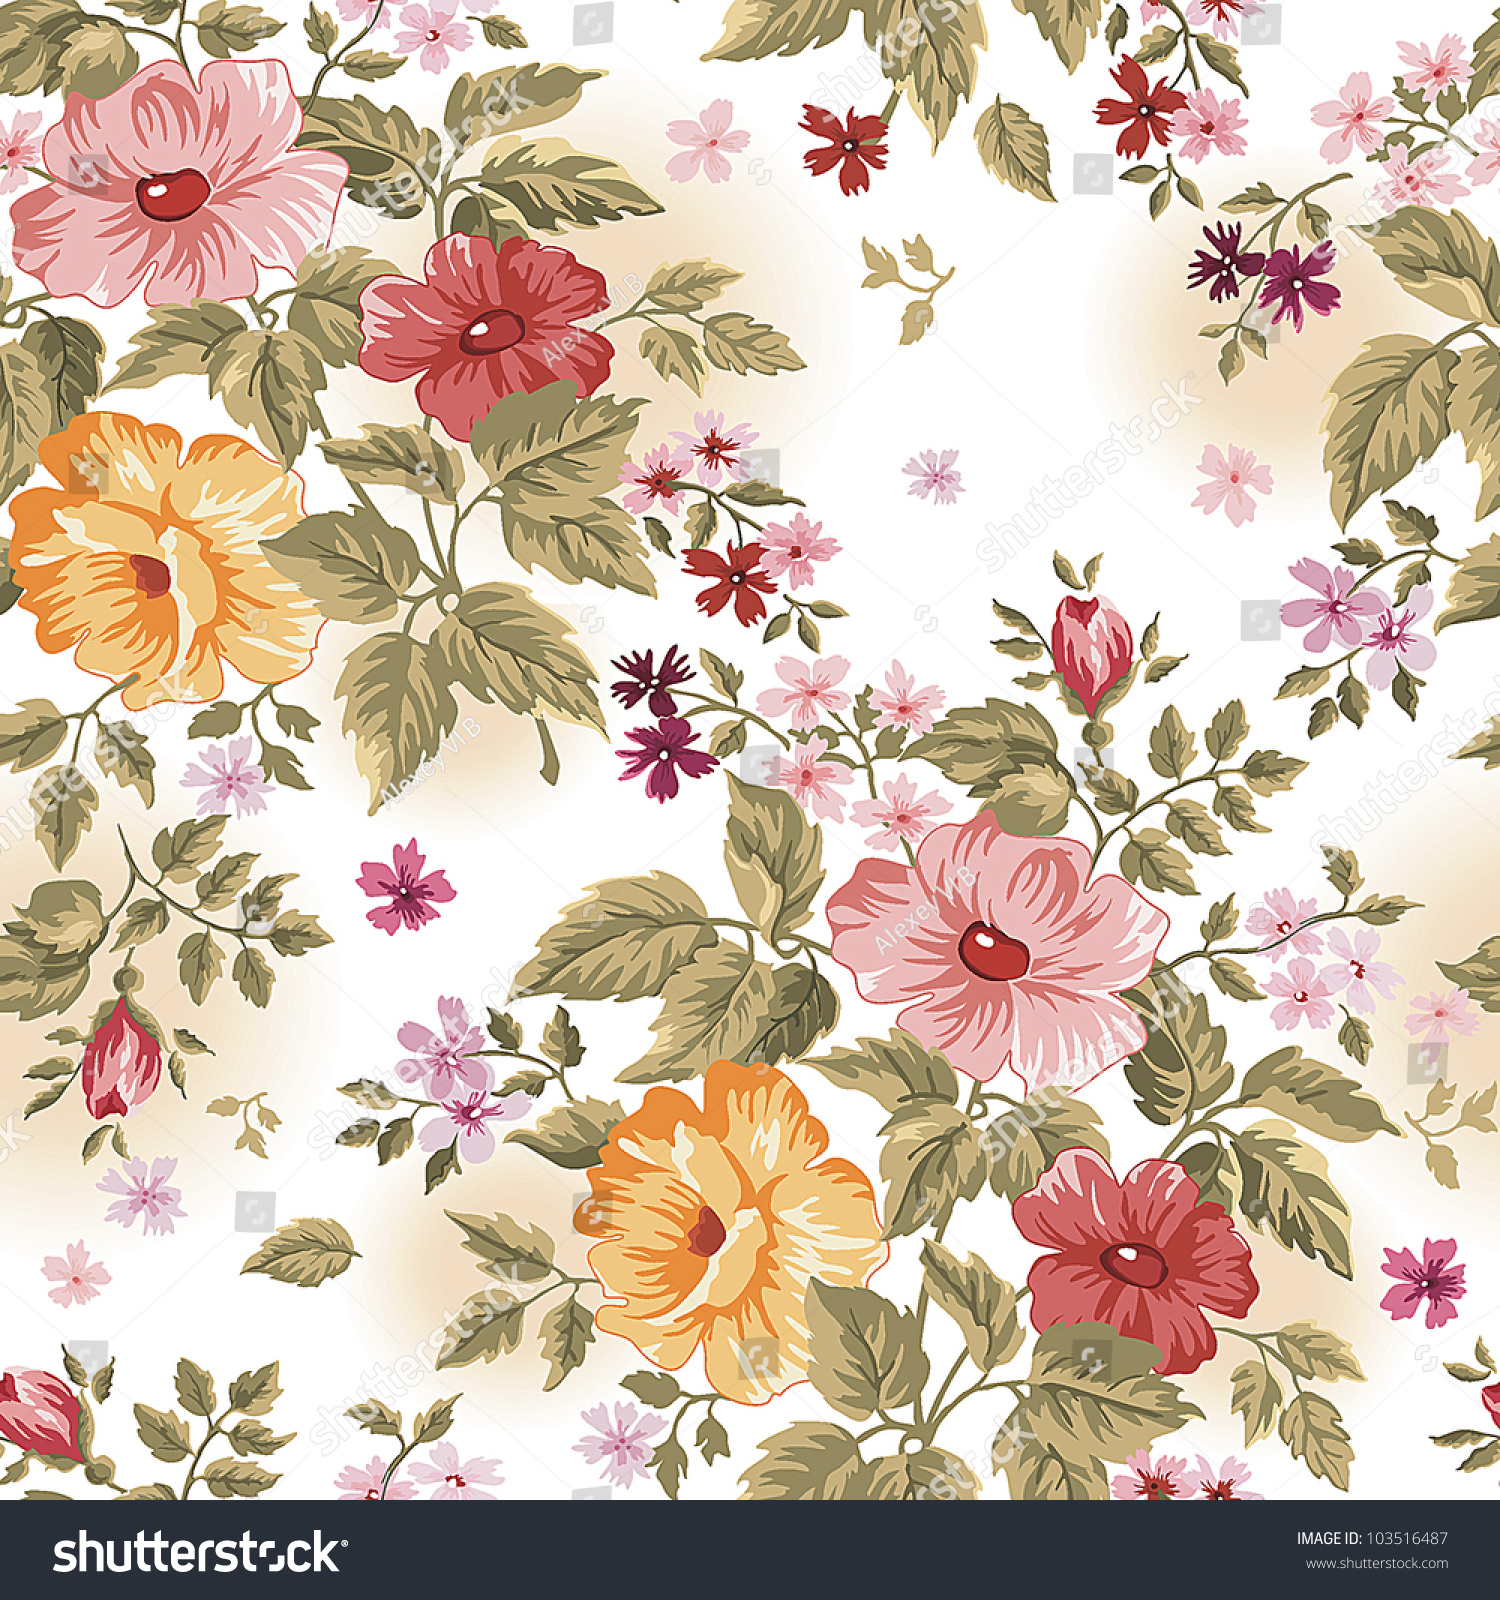 Seamless pink floral pattern - photo#48